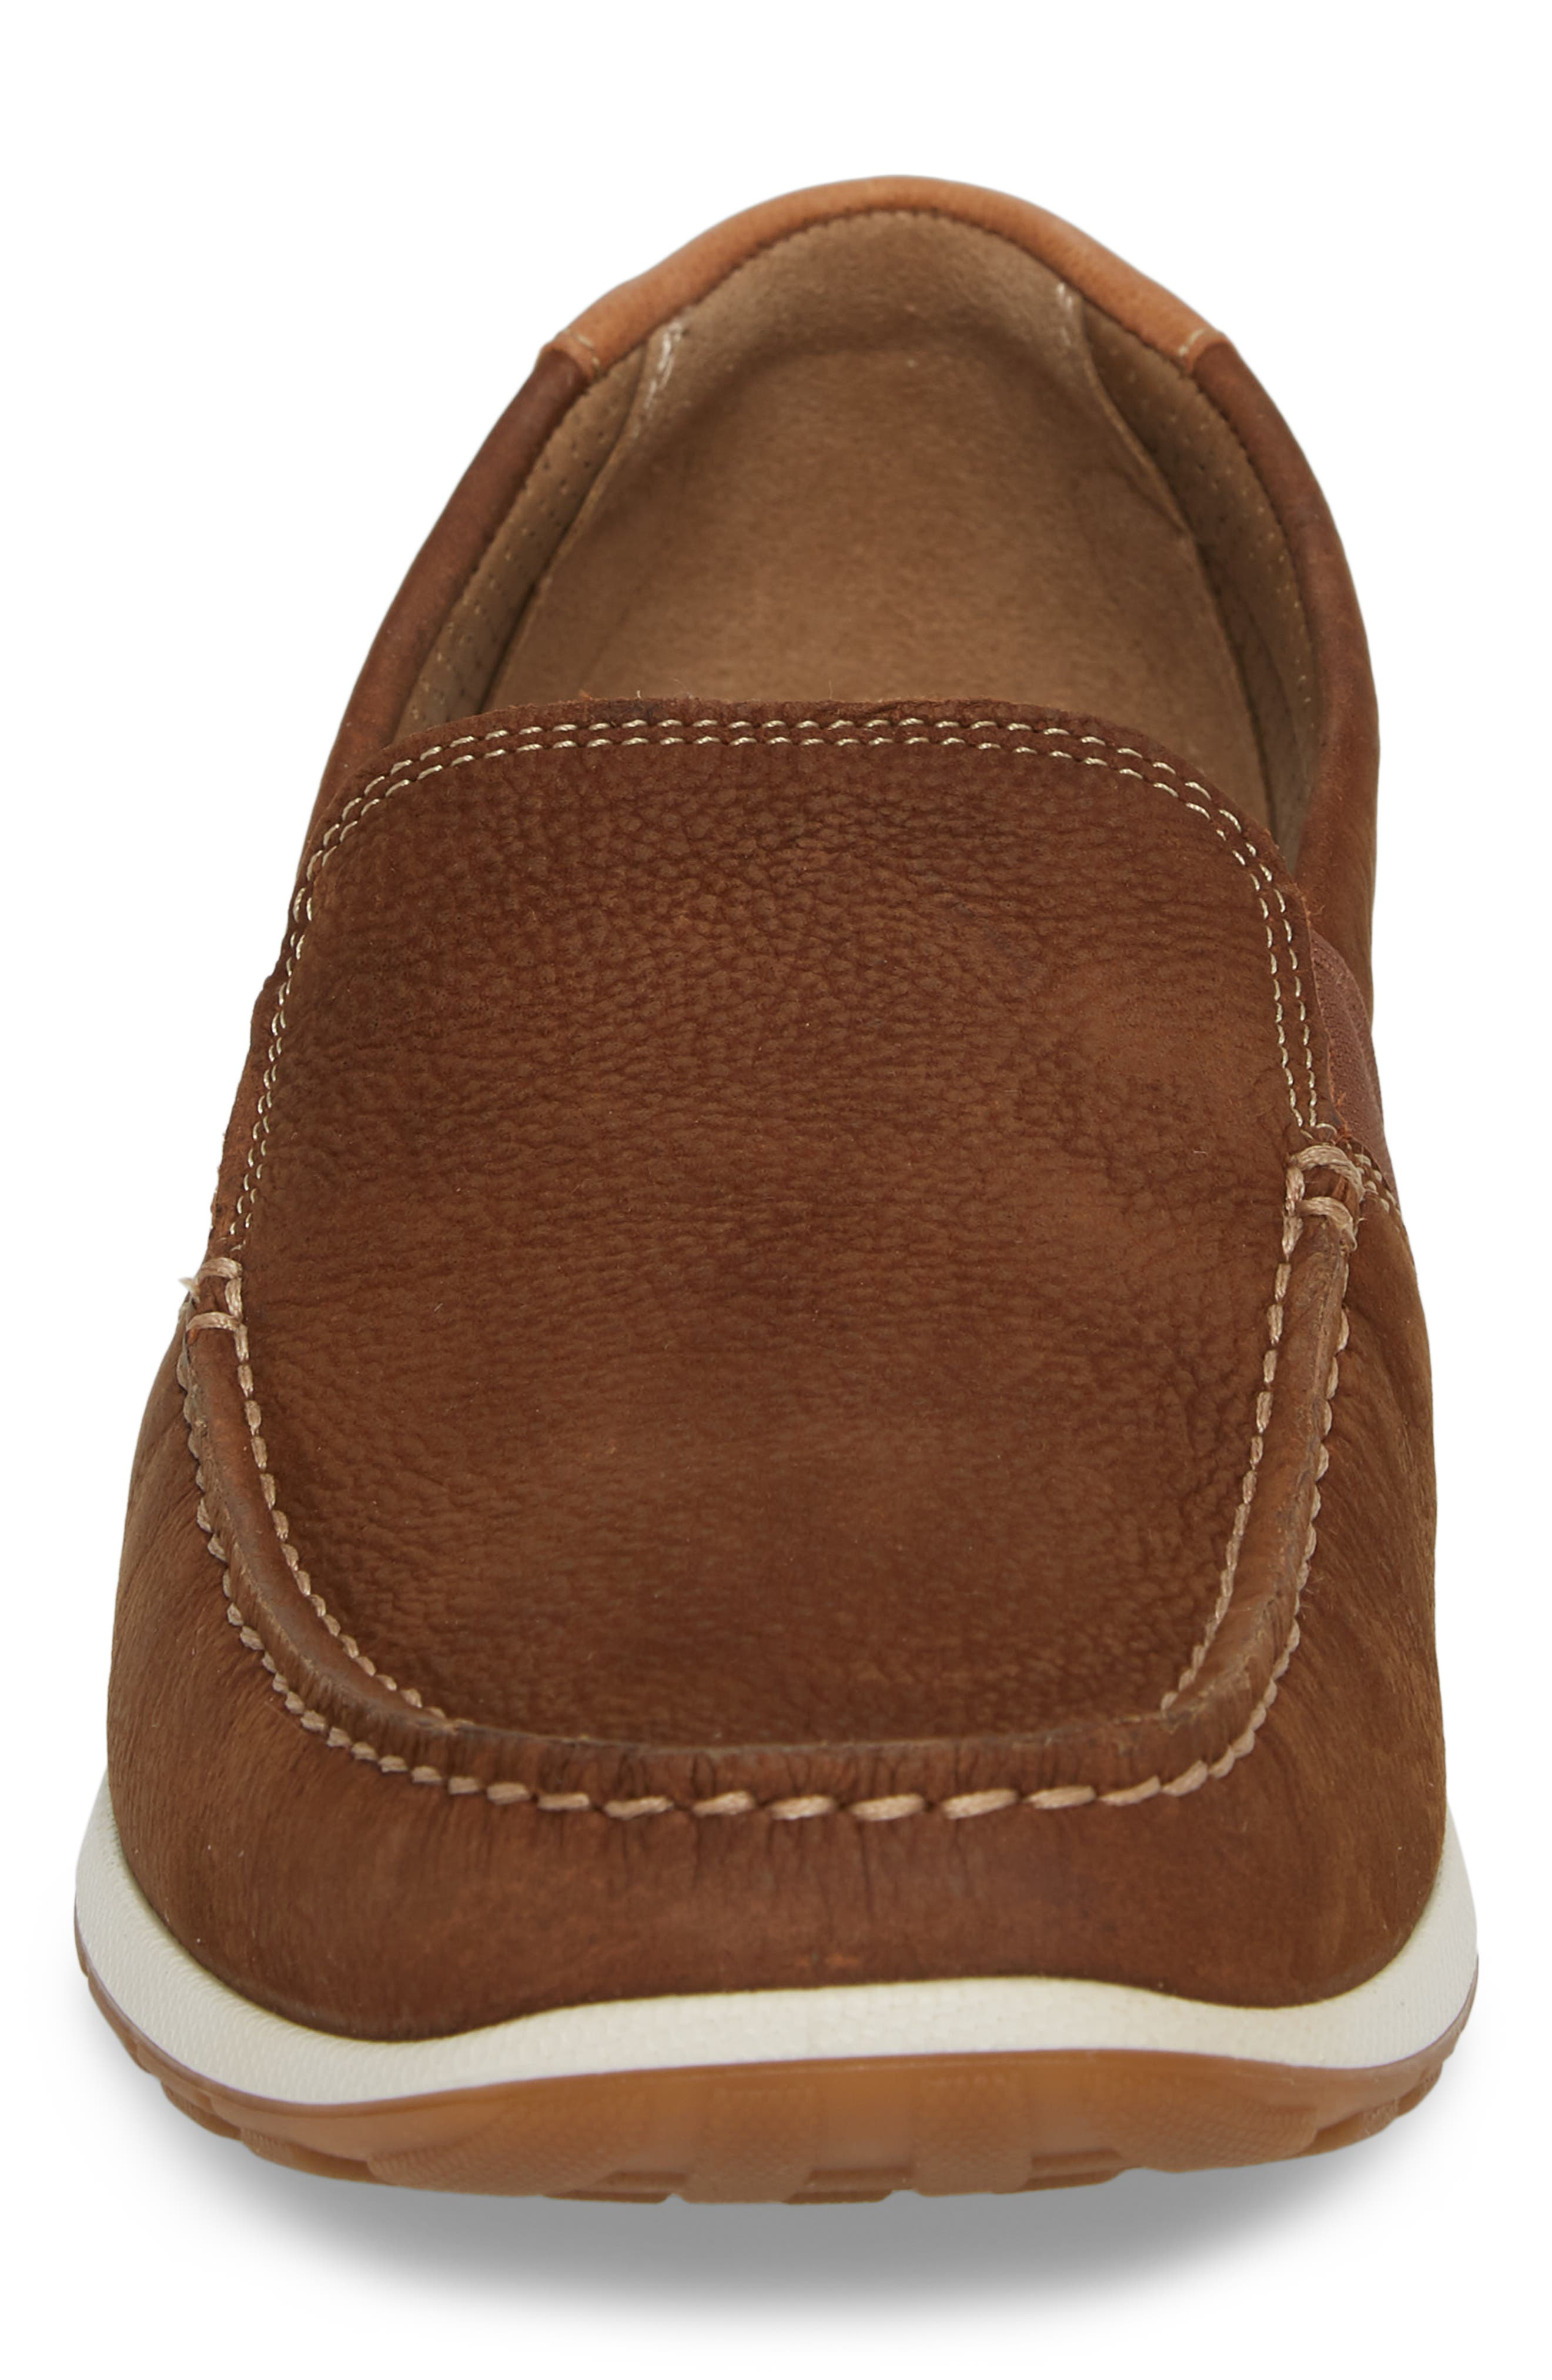 DIP Lux Moc Toe Driver,                             Alternate thumbnail 4, color,                             Mahogany Leather